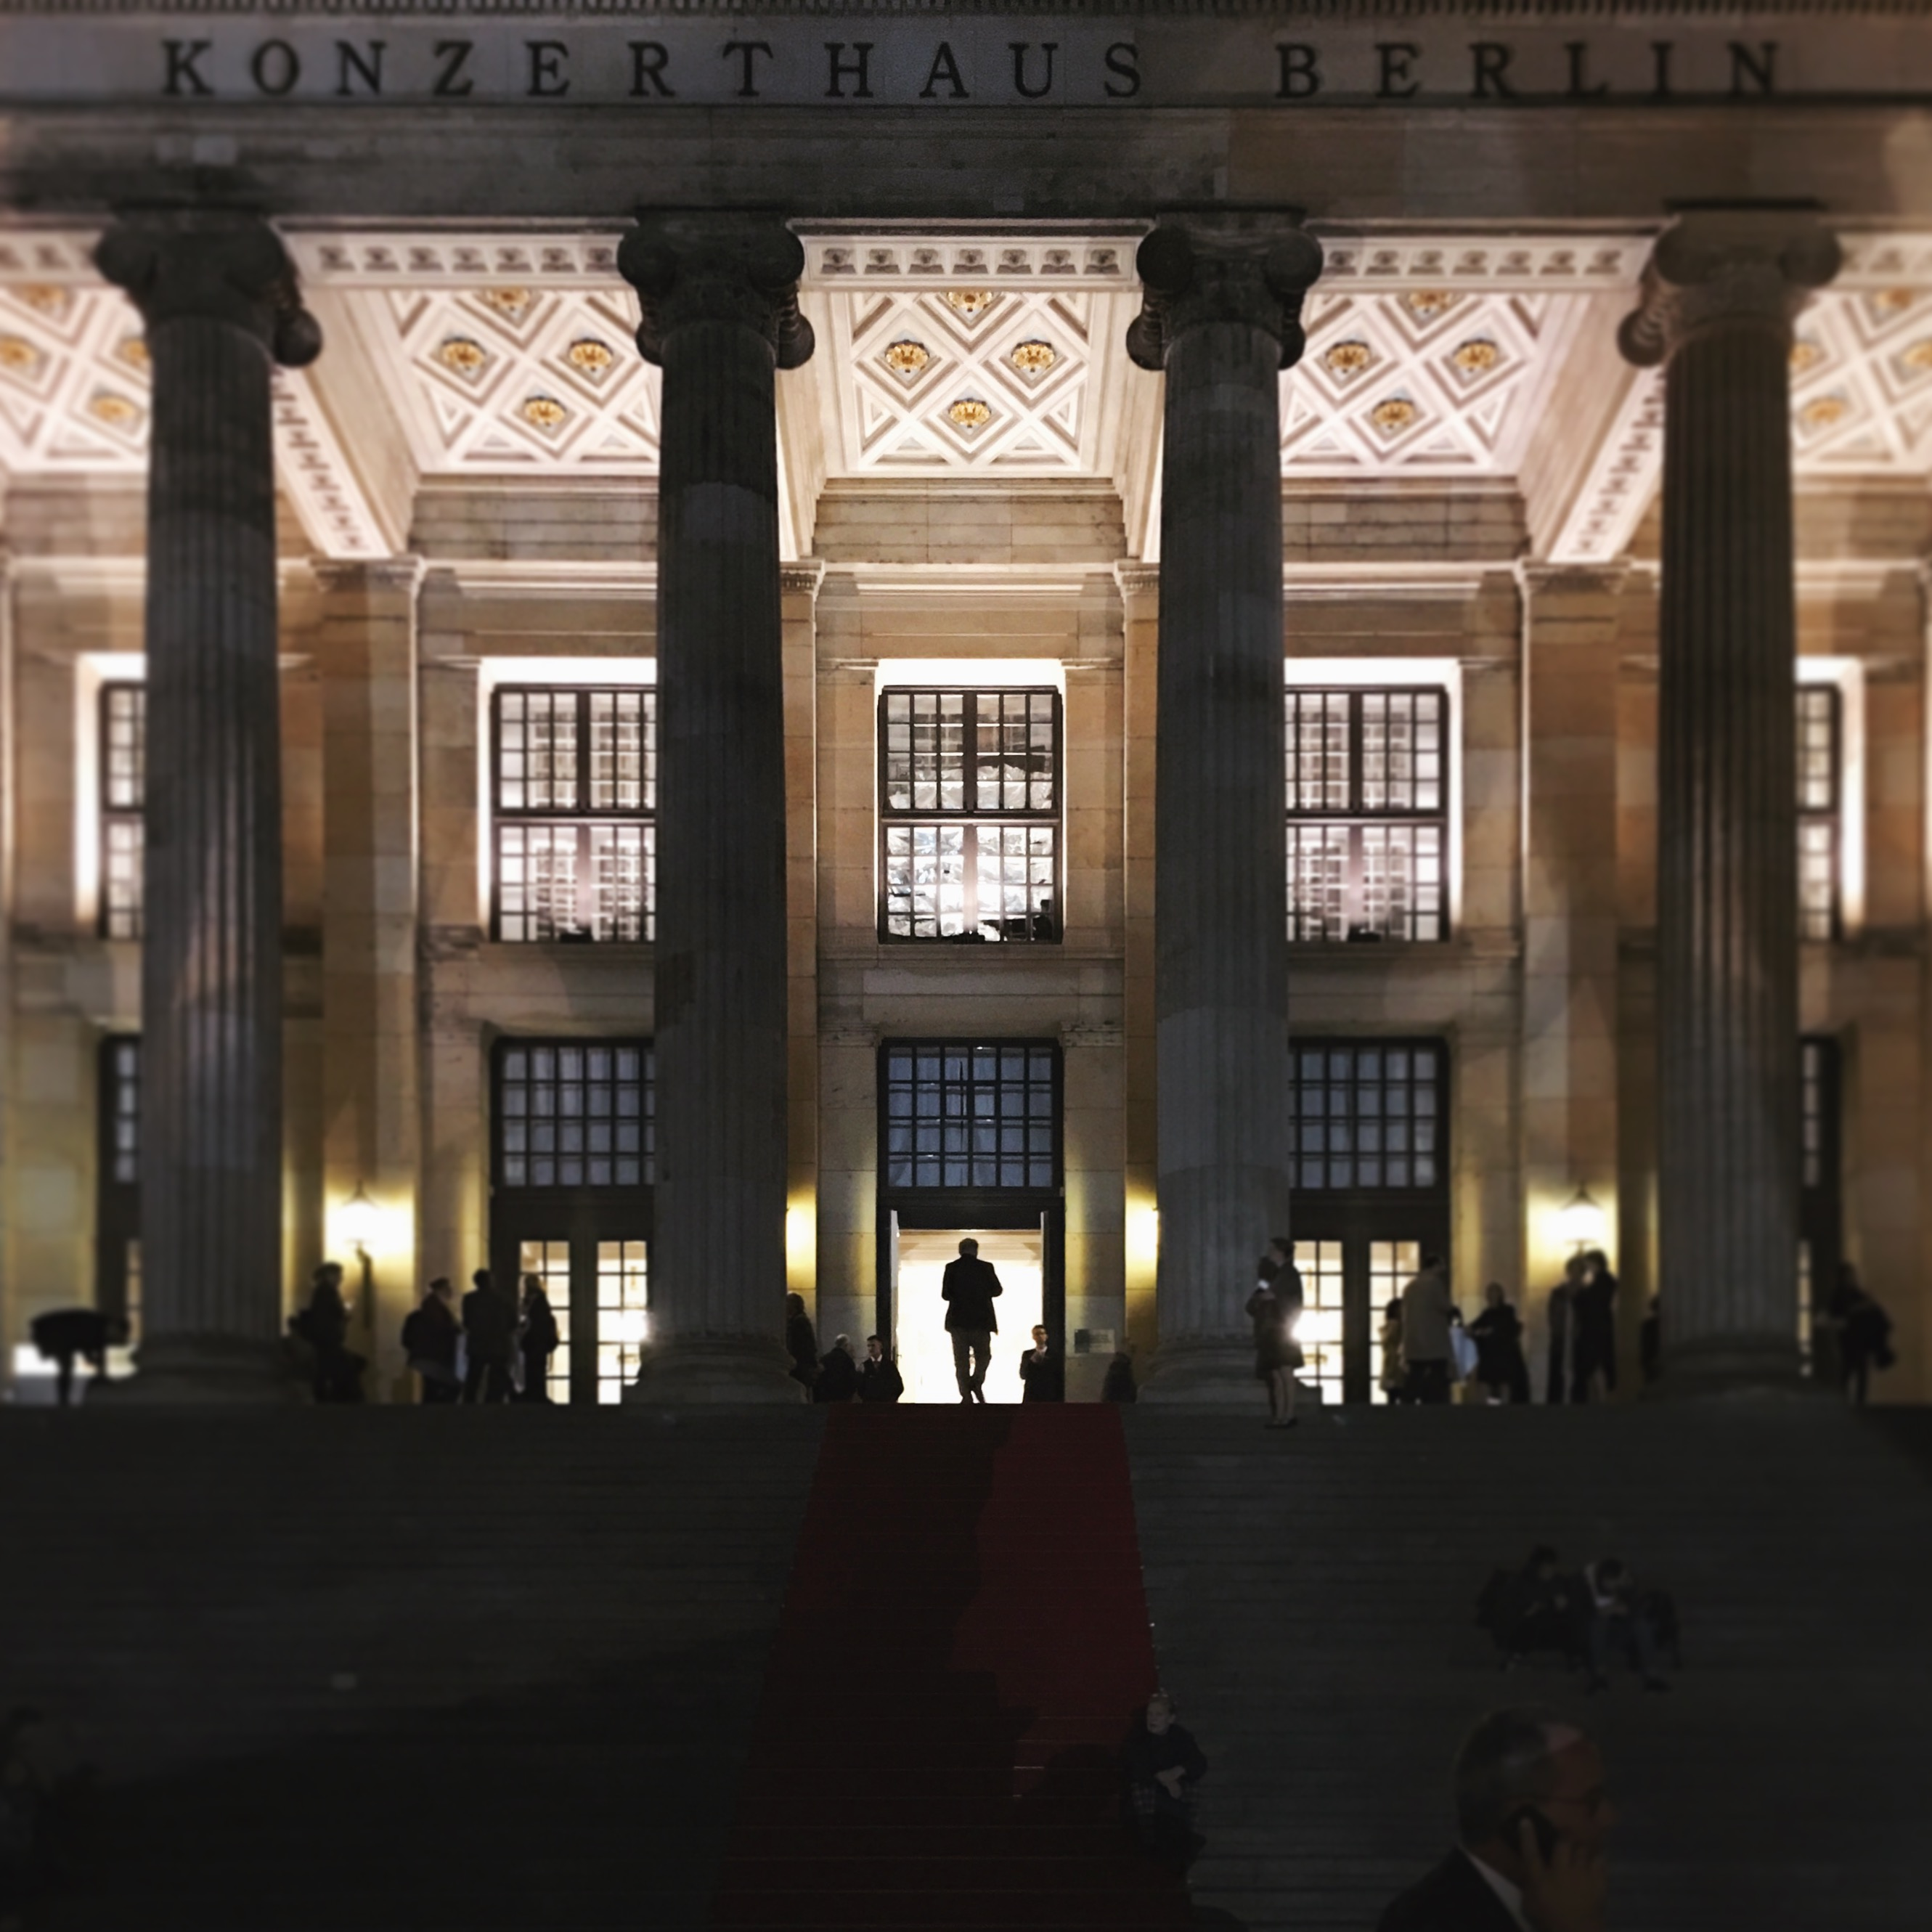 Das Konzerthaus Berlin by Elena Mazzoni Wagner - Sep/Oct 2016